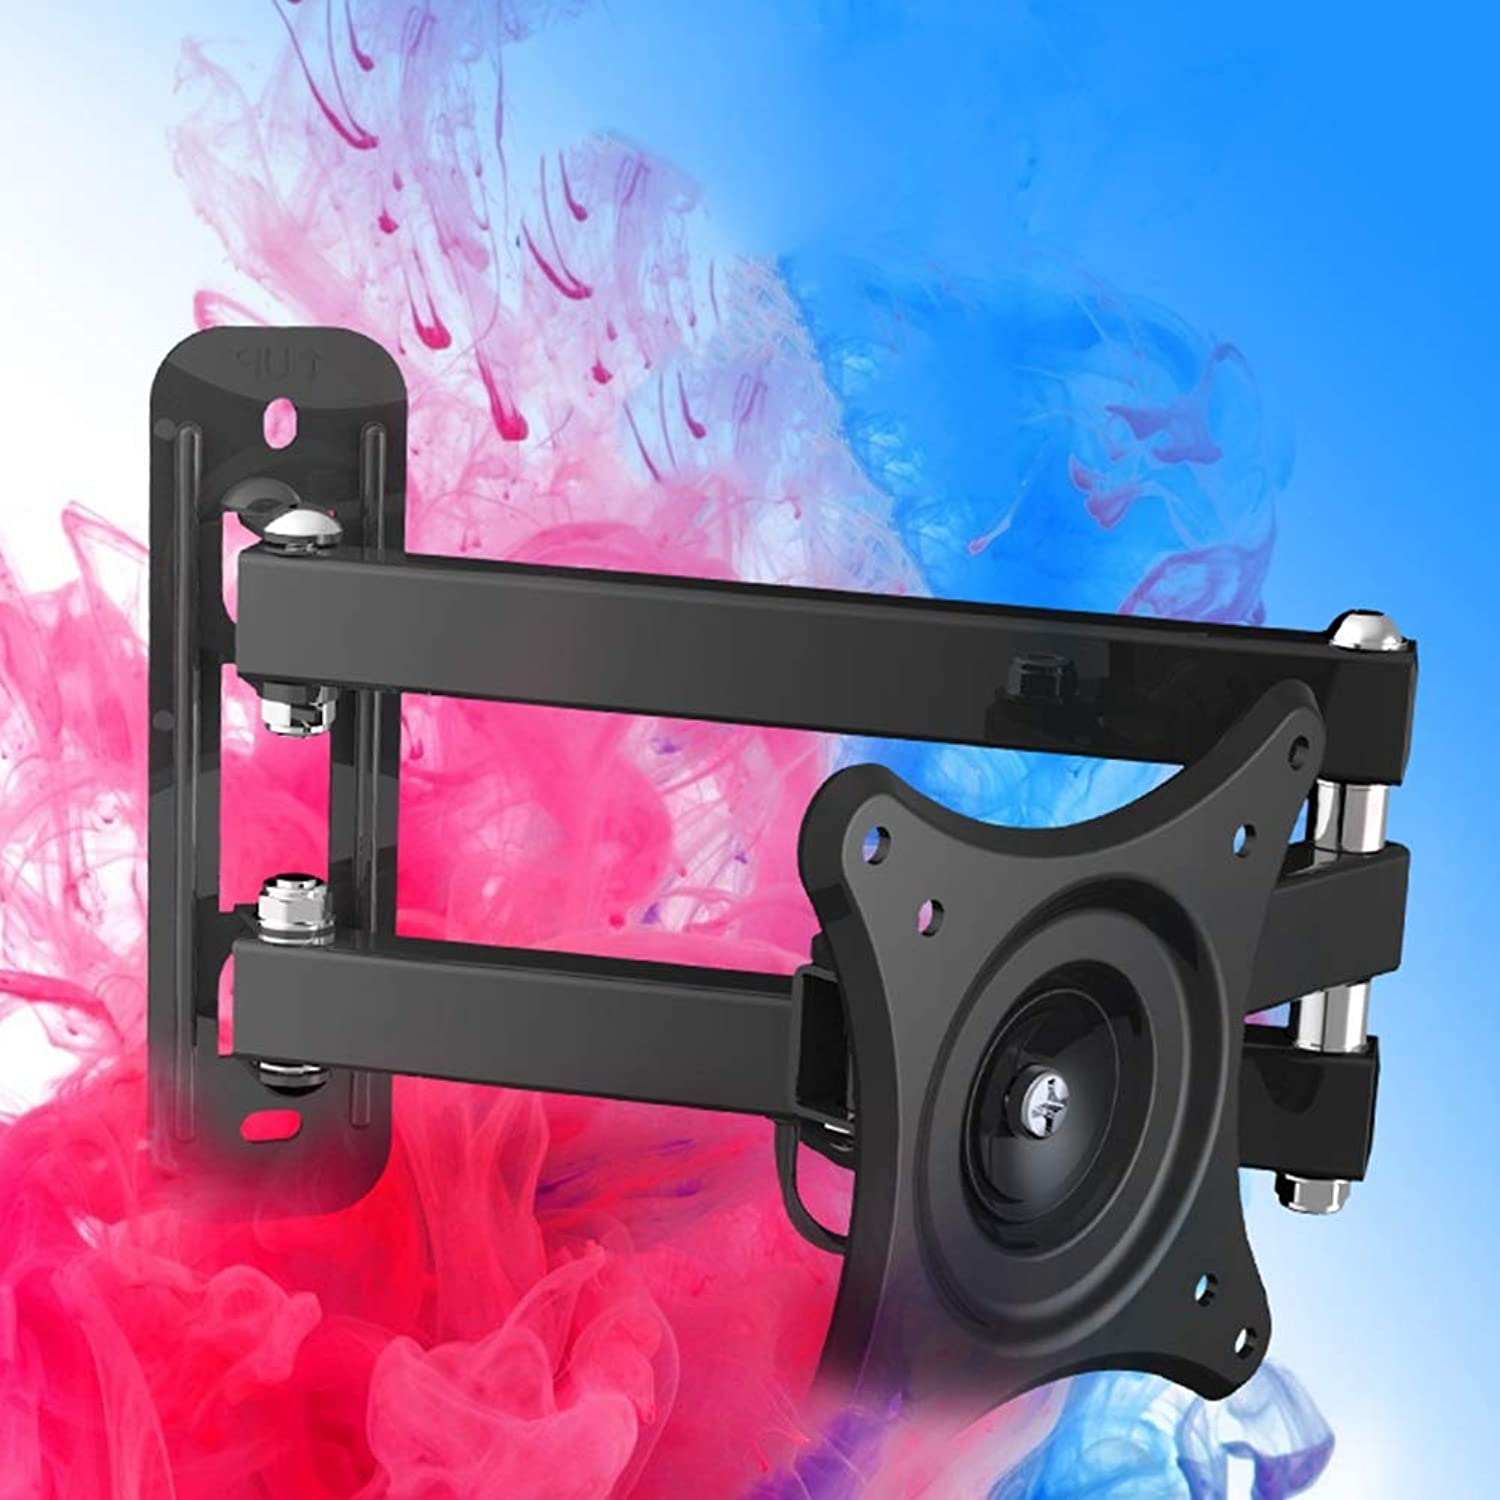 TV Wall Bracket Mount, for 10-24 Inch TV Display Telescopic redation Please Check TV VESA Mounting Holes Before Purchase (HDTV-DL)